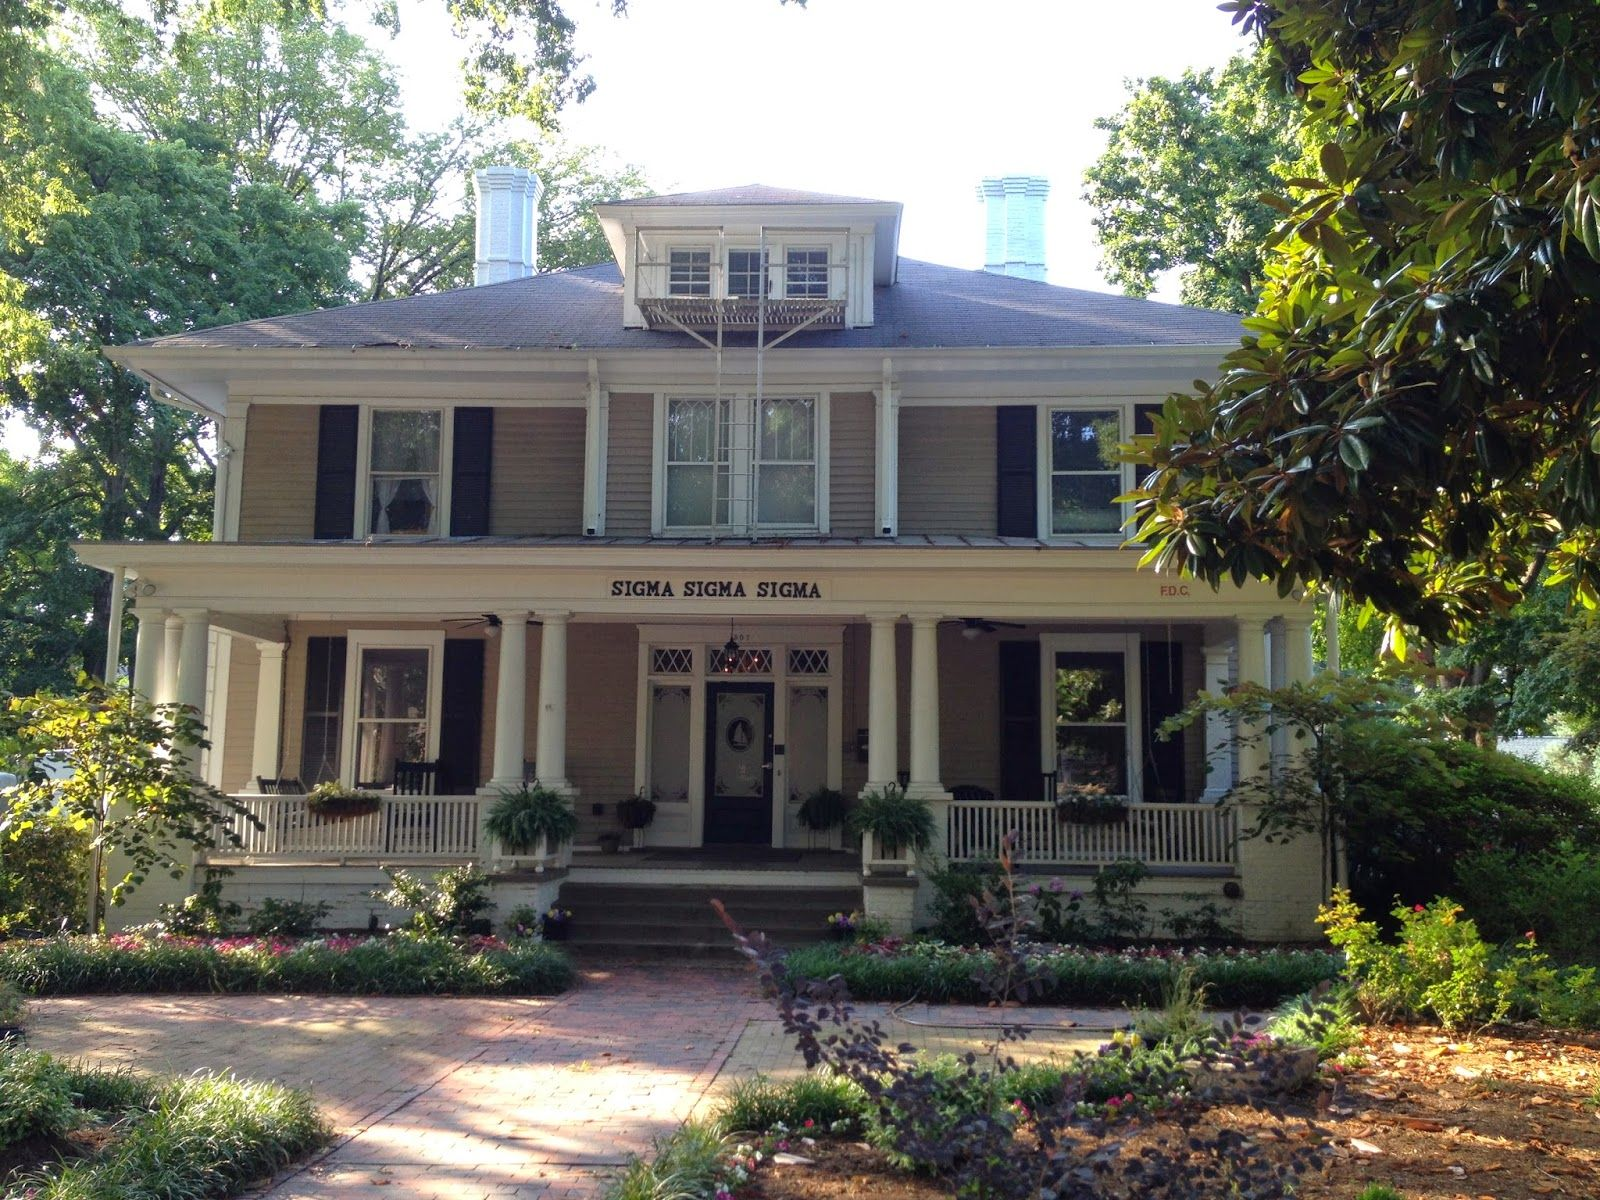 Unc Chapel Hill Sigma Sigma Sigma House Unc Chapel Hill House Styles House